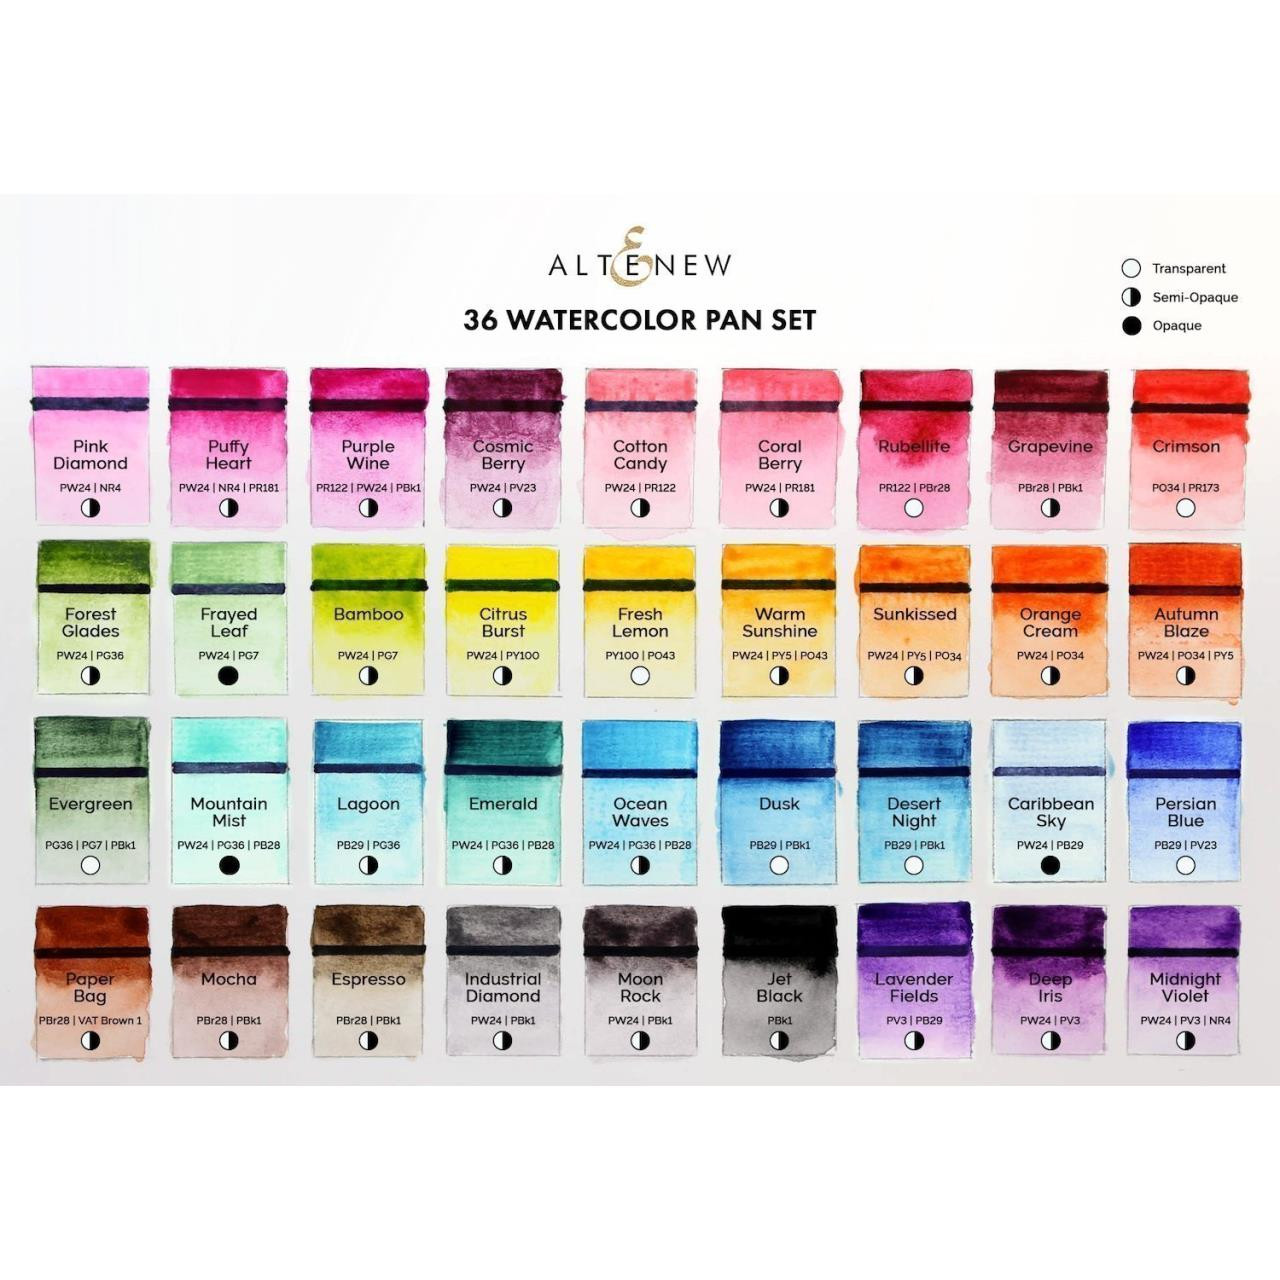 36 Pan Set, Altenew Watercolor Paint - 655646164298